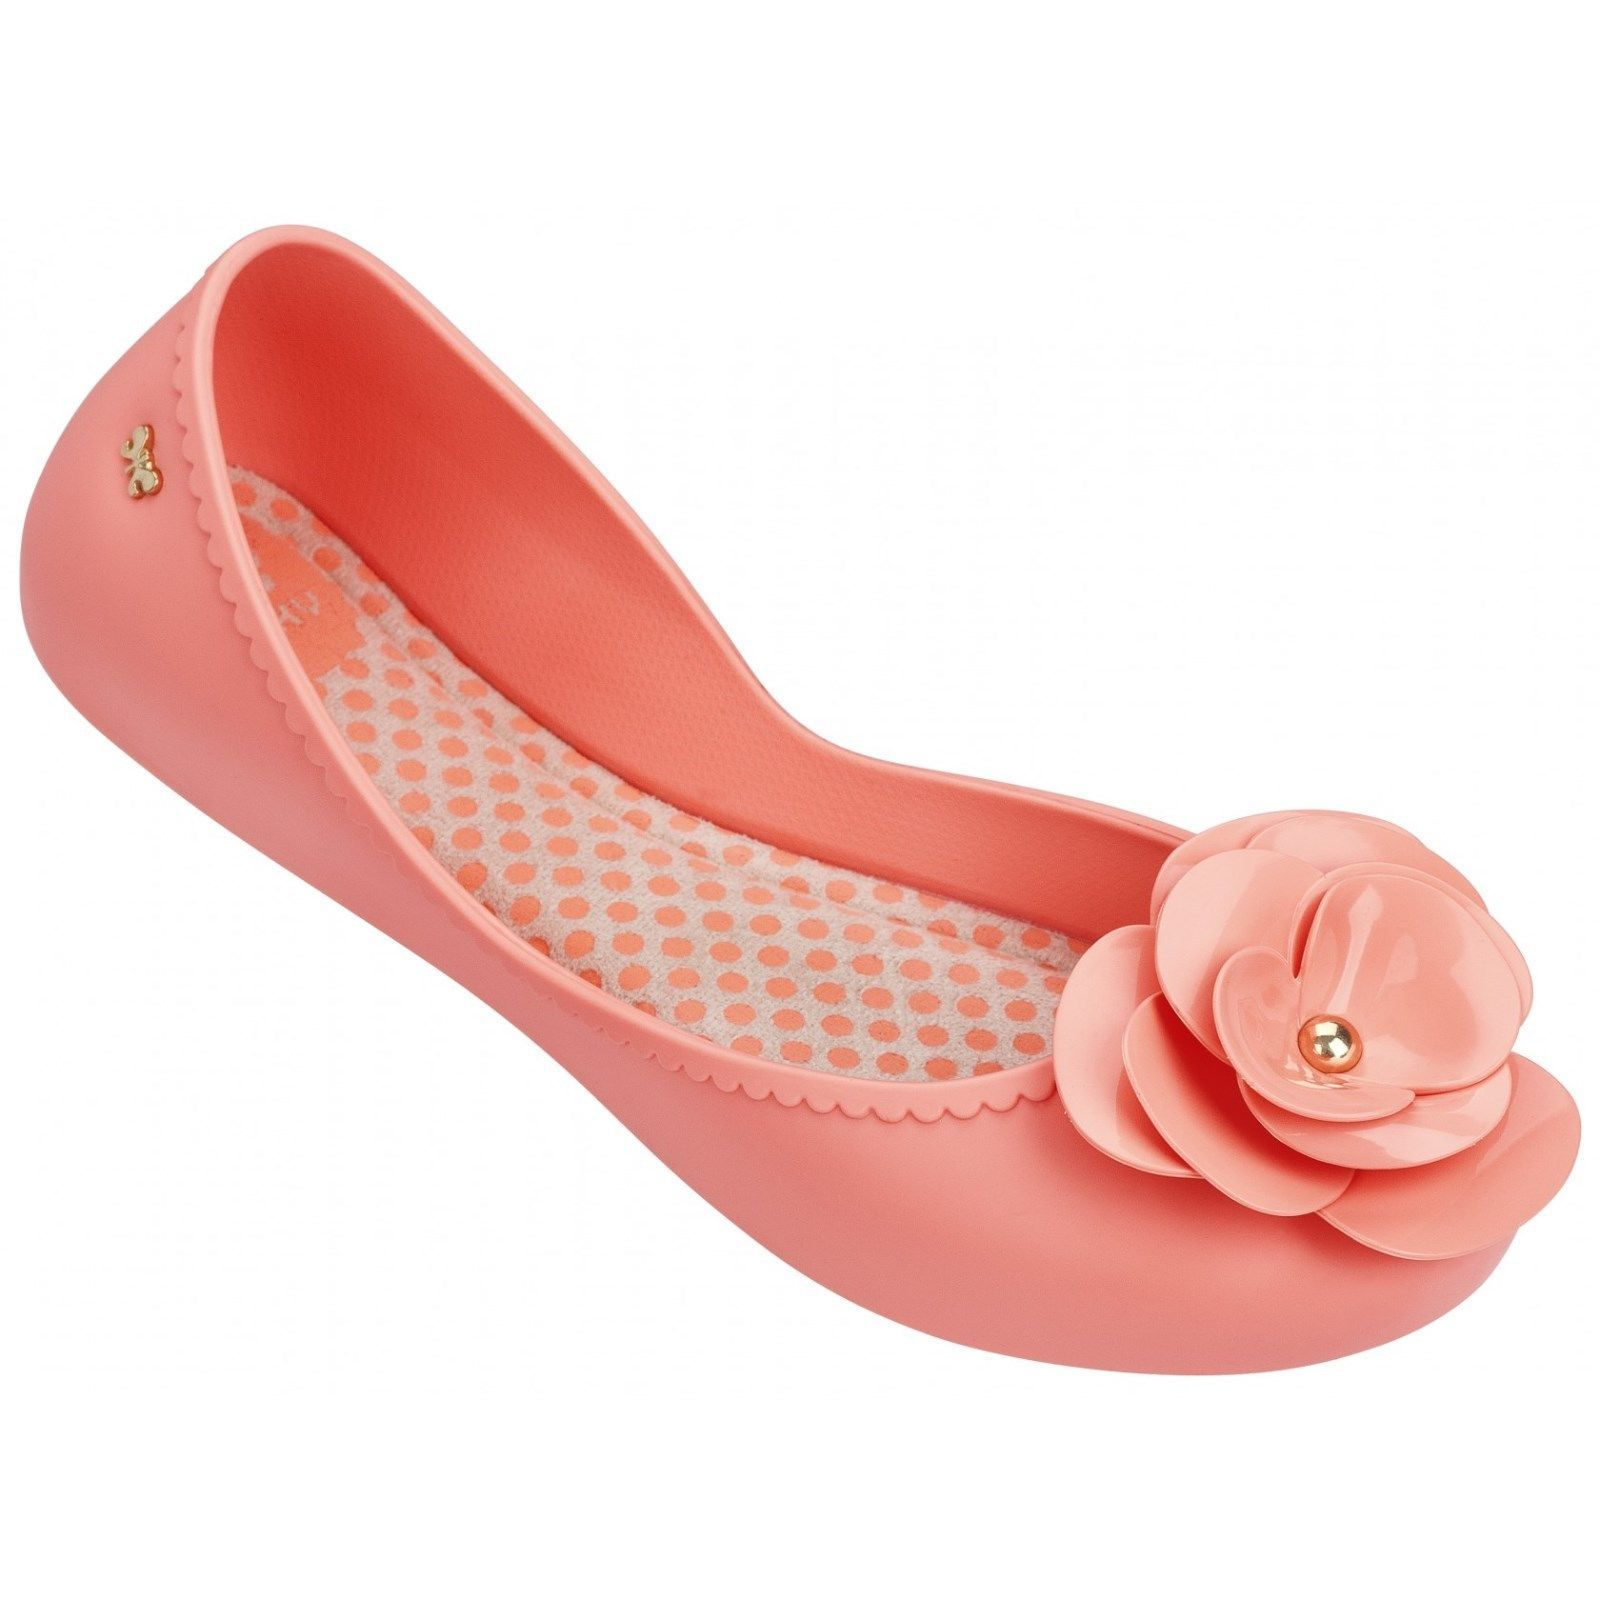 5d341688b Ladies Zaxy Start Bloom Peach Flower Flat Jelly Pumps Ballerina Shoes Uk 3  - 8